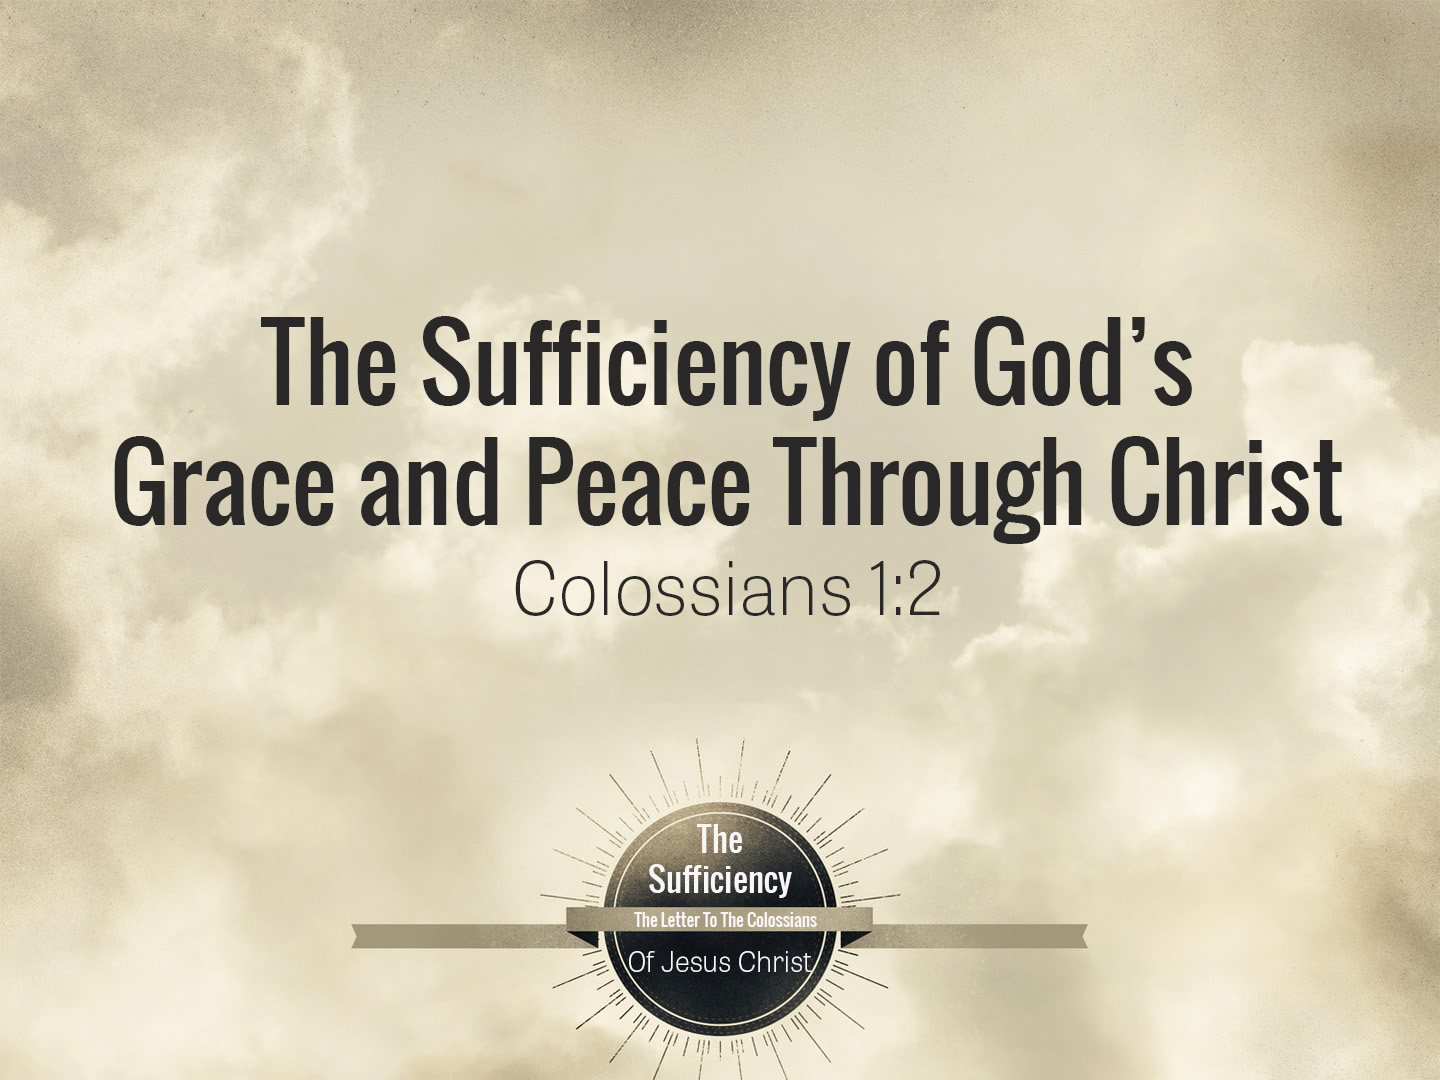 Colossians 1v2 The Sufficiency of Gods Grace and Peace Through Christ